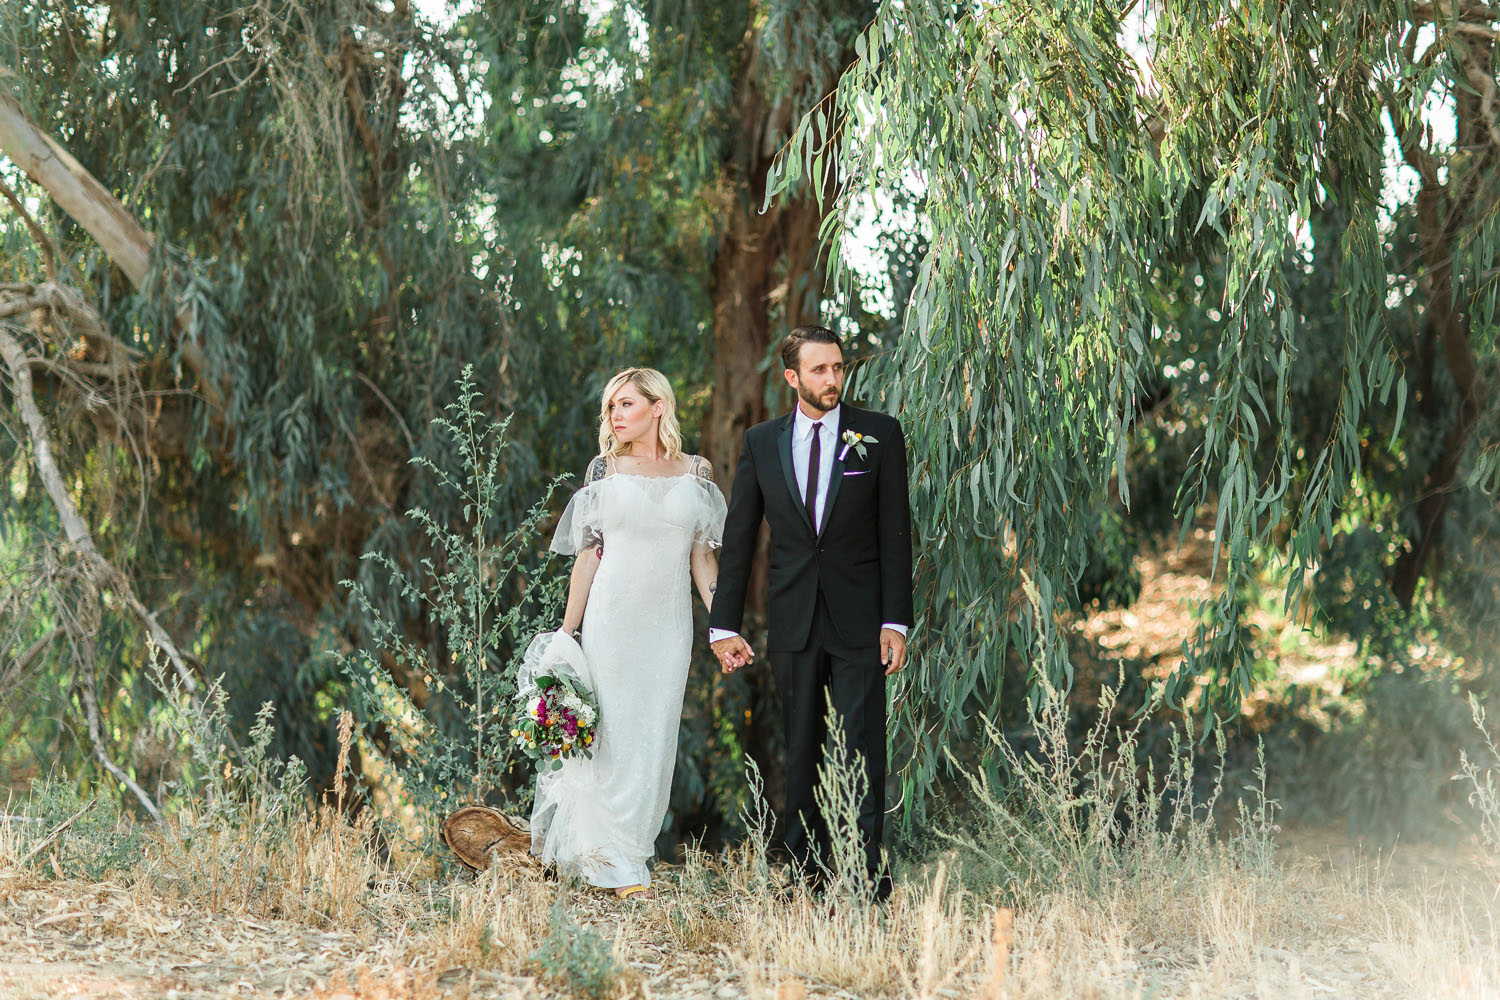 The Photege - Elegant Boho Wedding on Suburu Farm in Bakersfield California- Cassie and Darin Buoni-3010